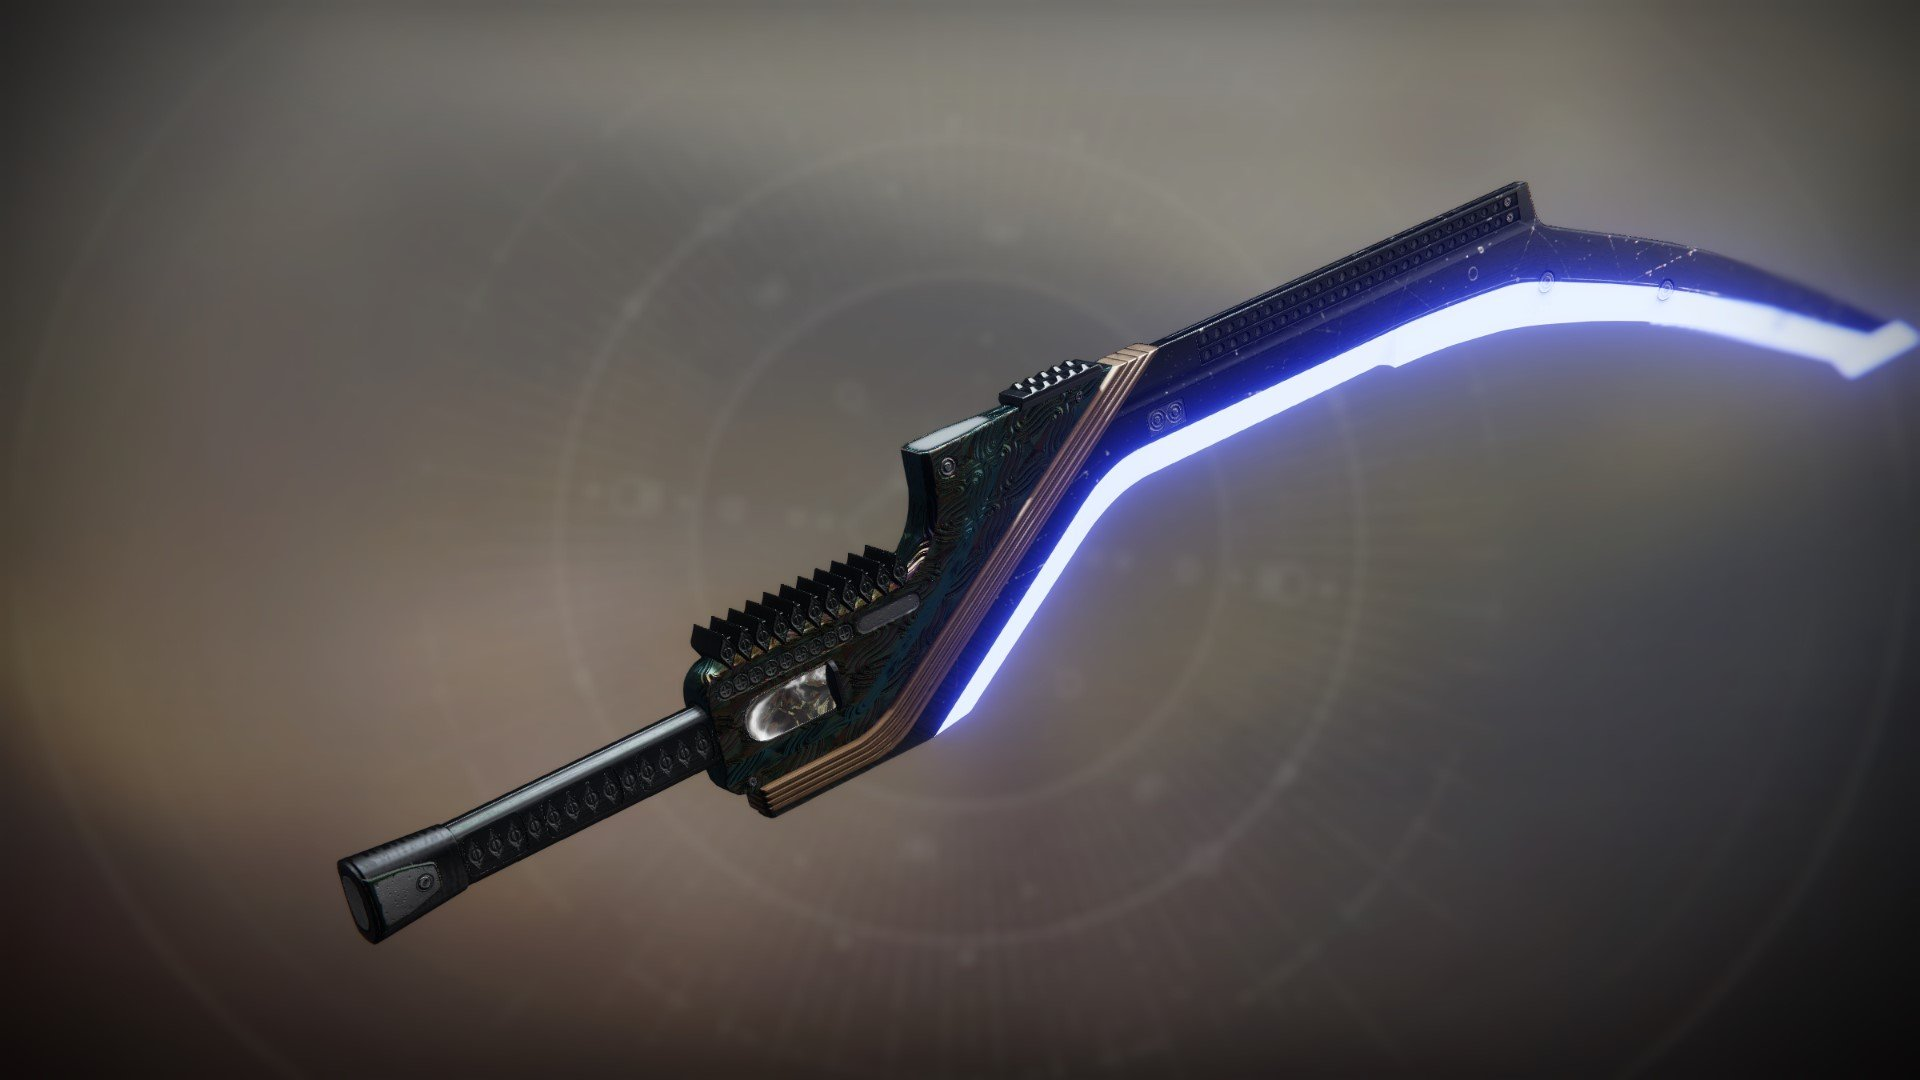 An in-game render of the Temptation's Hook.